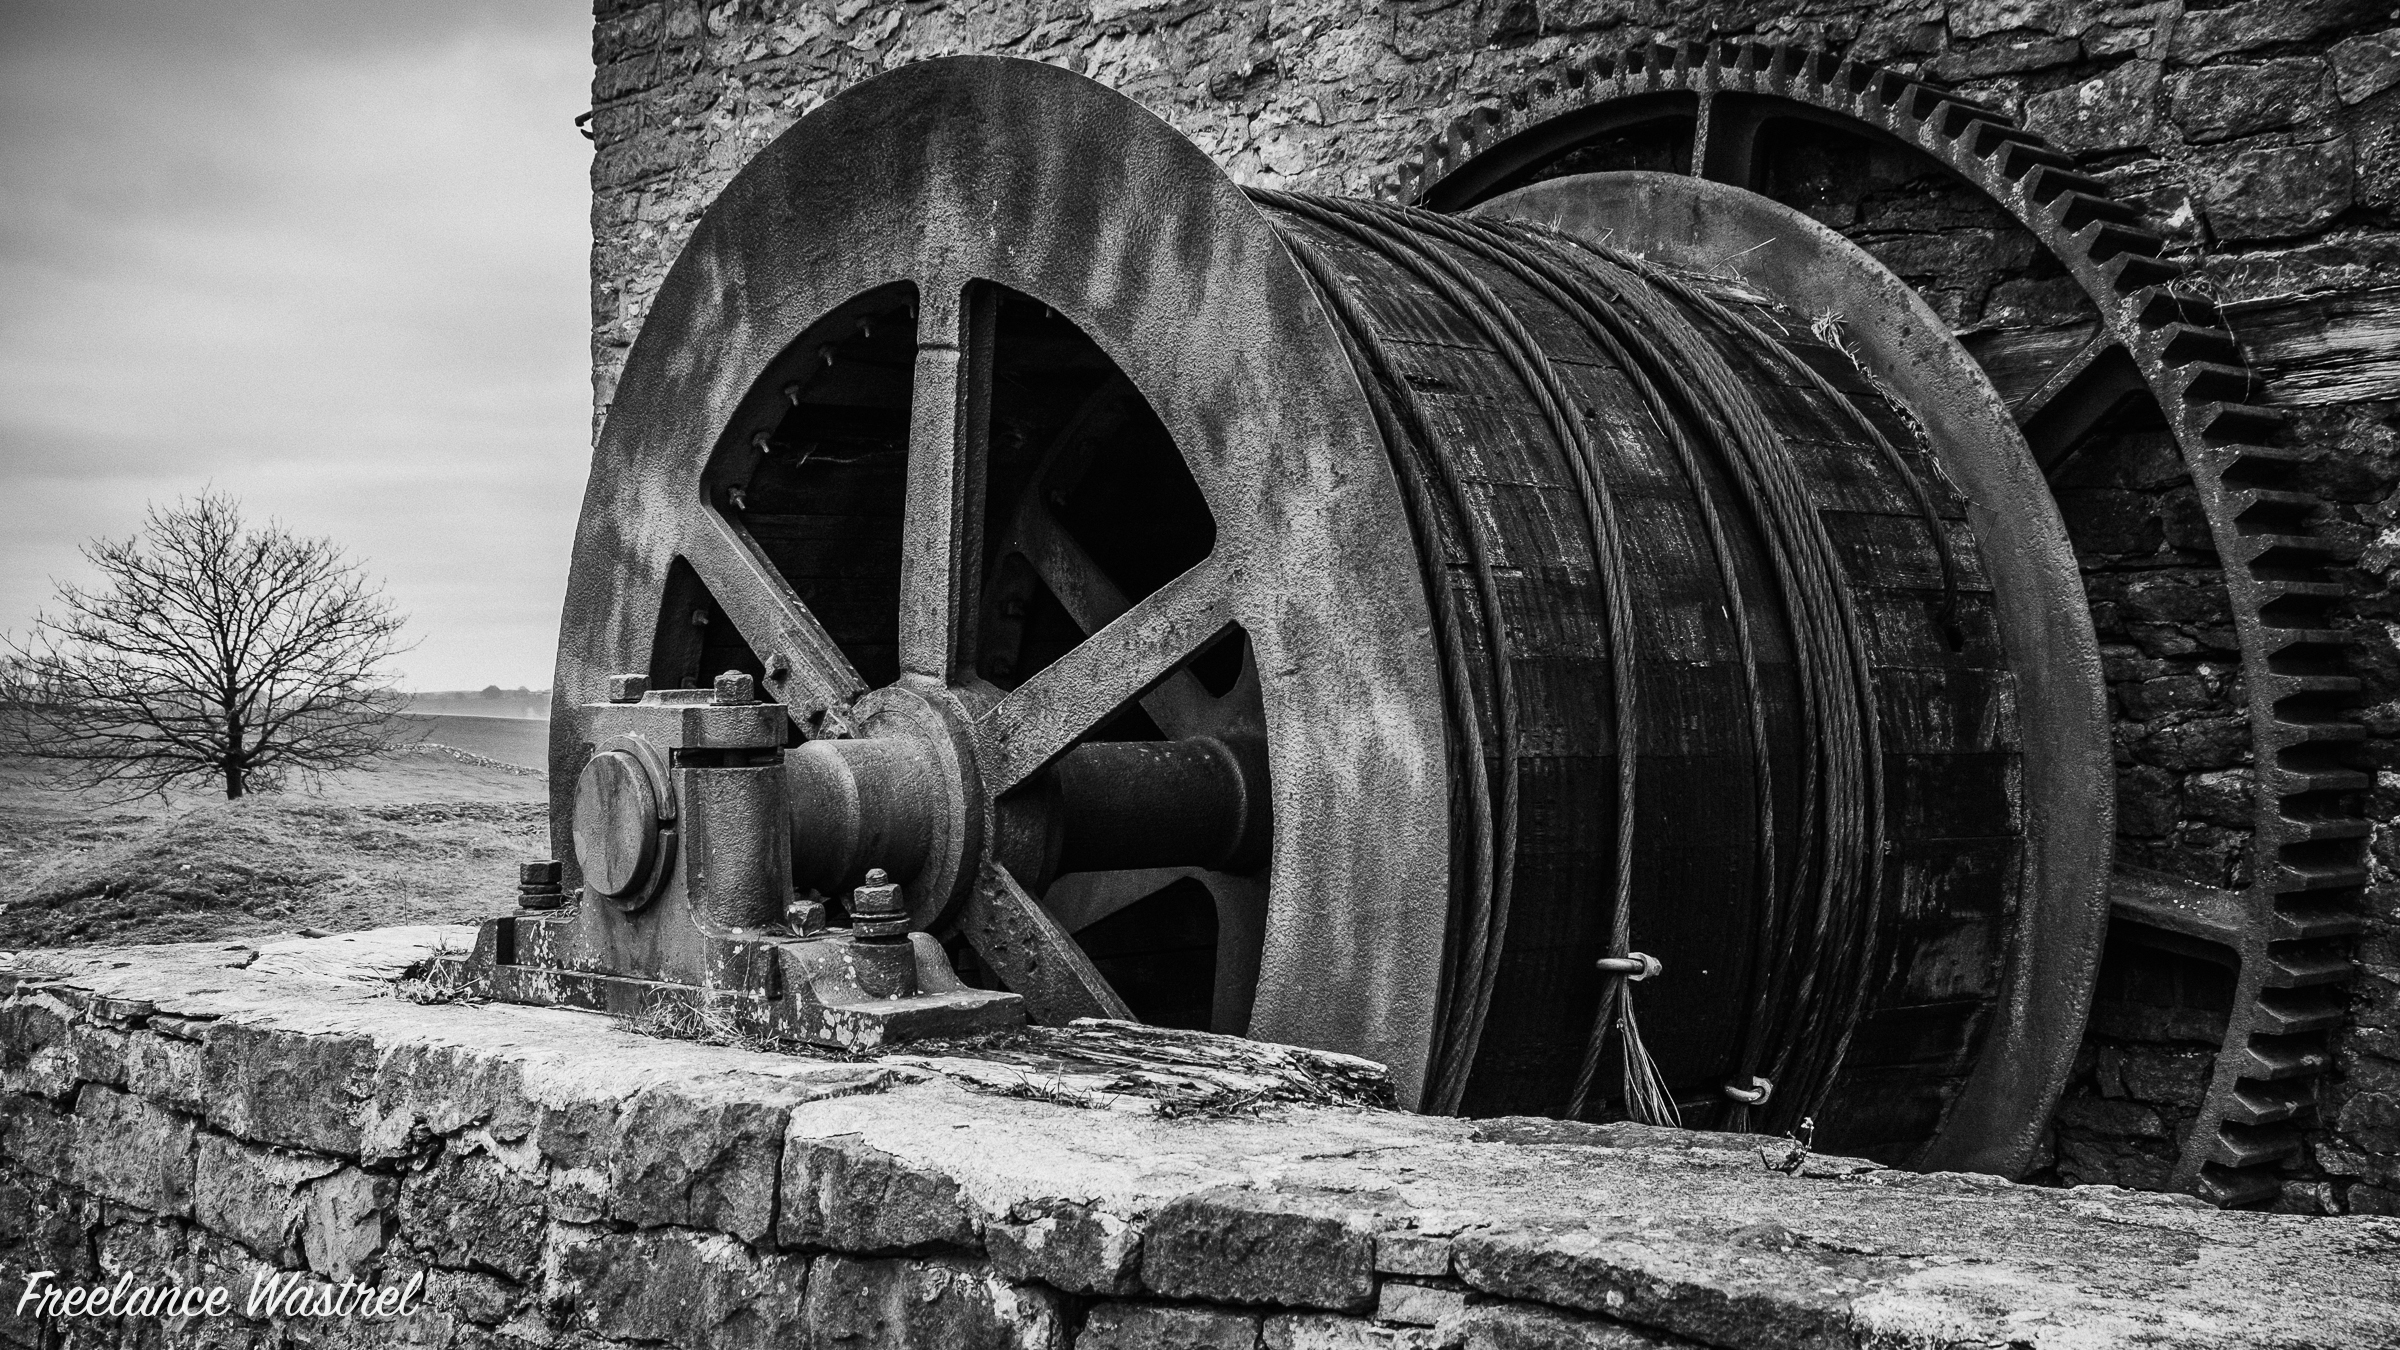 Winding Drum, Magpie Mine